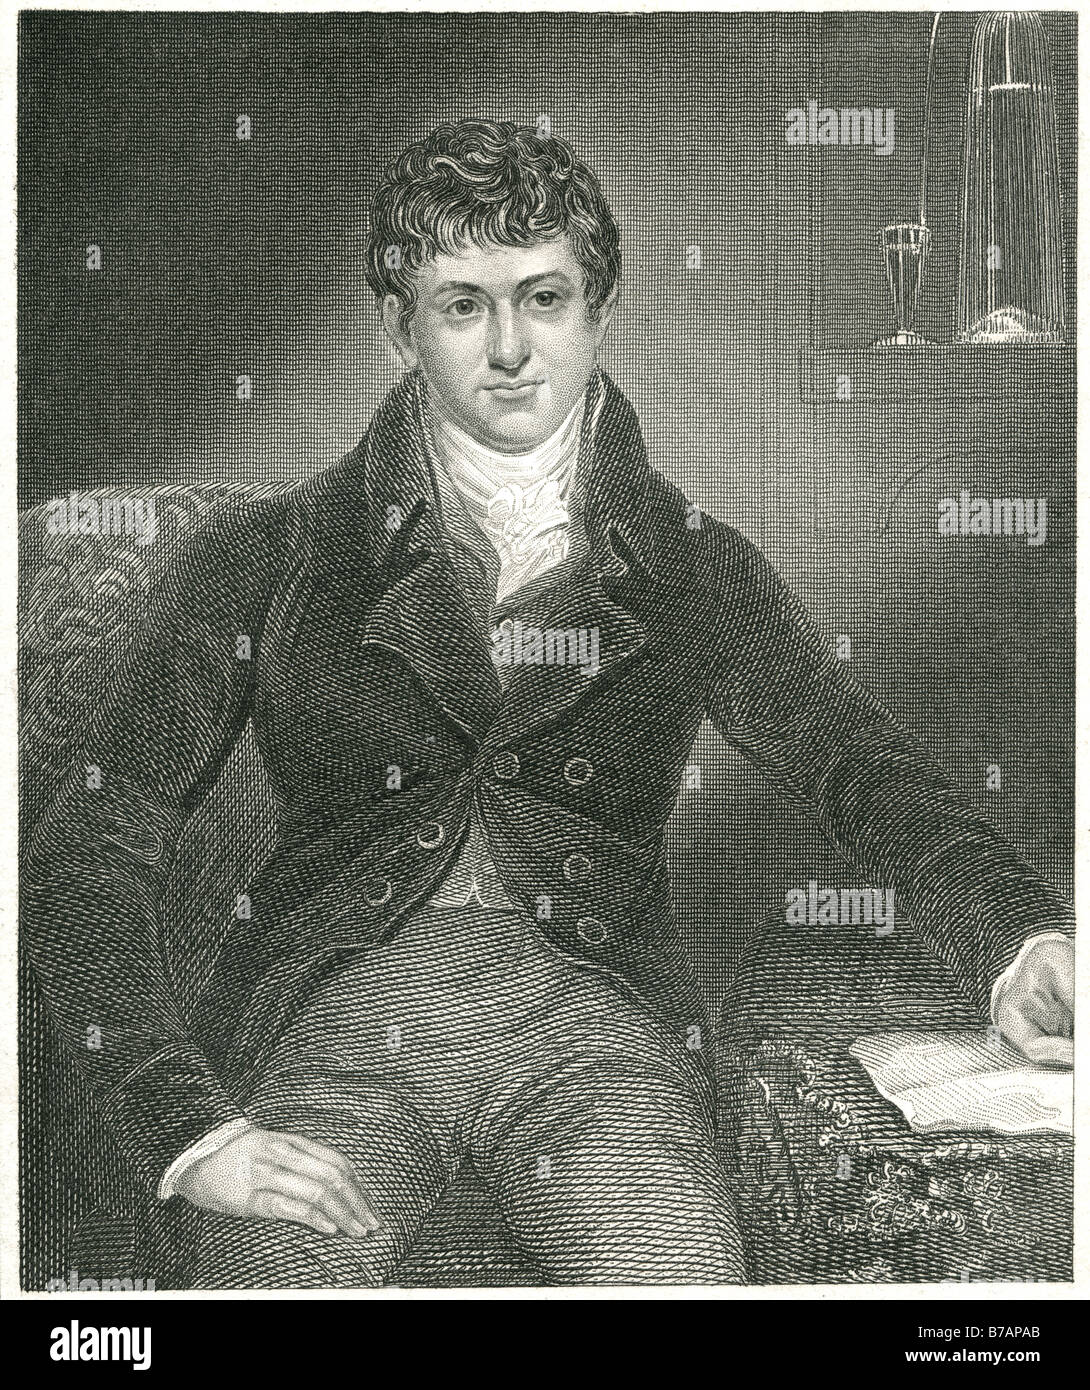 the accomplishments of sir humphry davy a chemist Sir humphry davy, 1st baronet prs mria fgs (17 december 1778 - 29 may 1829) was a cornish chemist and inventor he is best remembered today for his discoveries of several alkali and alkaline earth metals , as well as contributions to the discoveries of the elemental nature of chlorine and iodine.